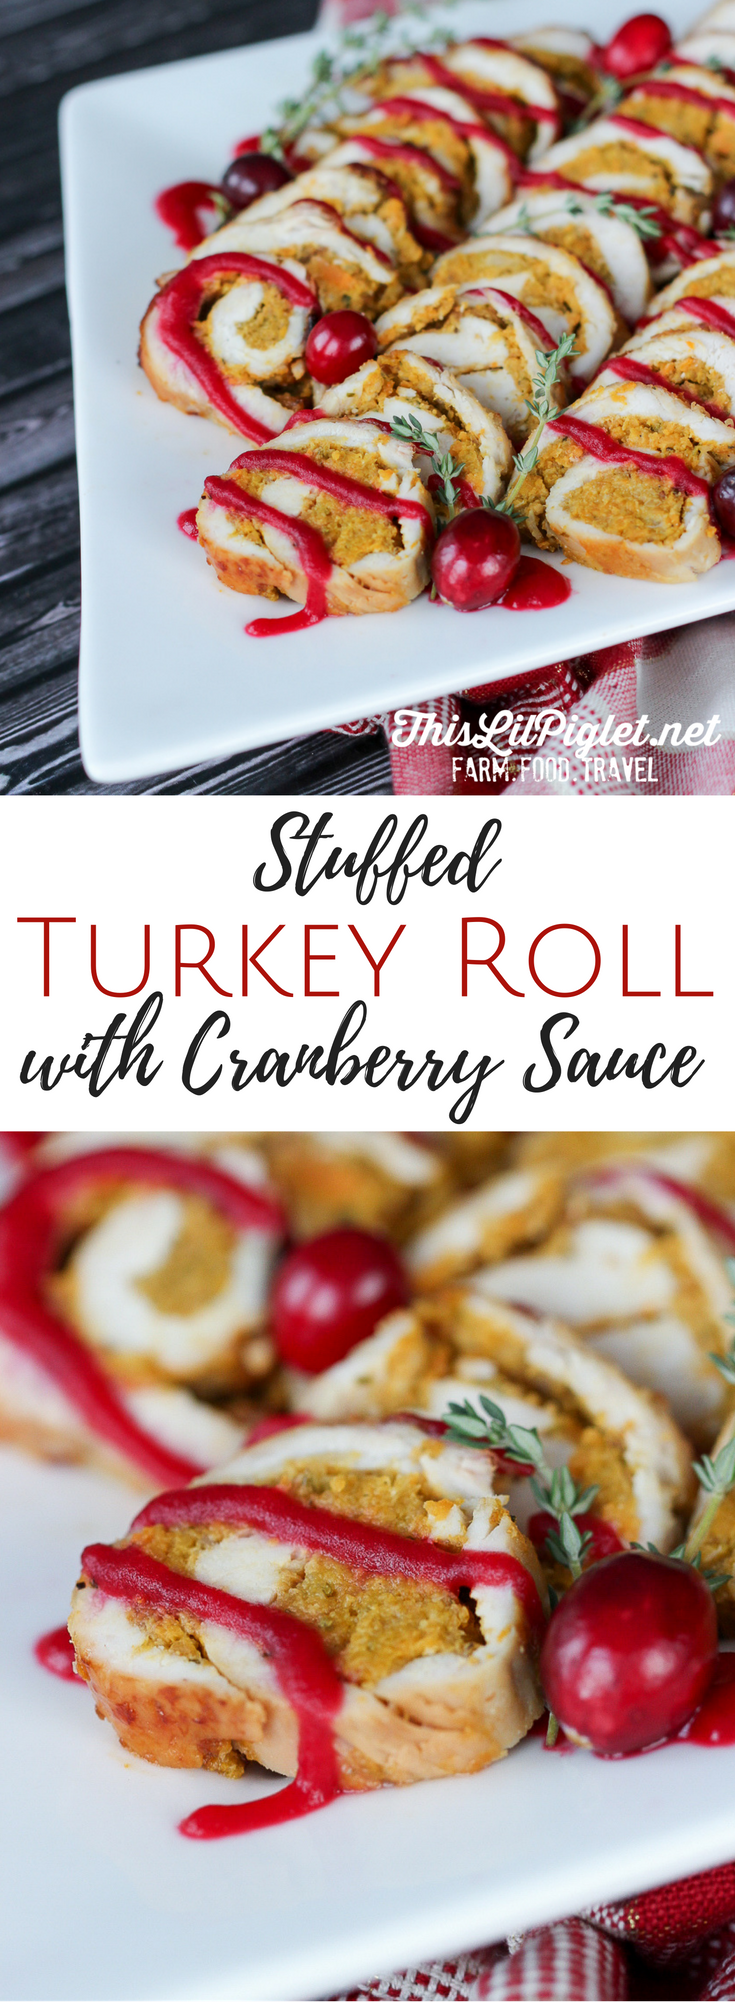 Stuffed Turkey Roll in Cranberry Sauce // via @thislilpiglet